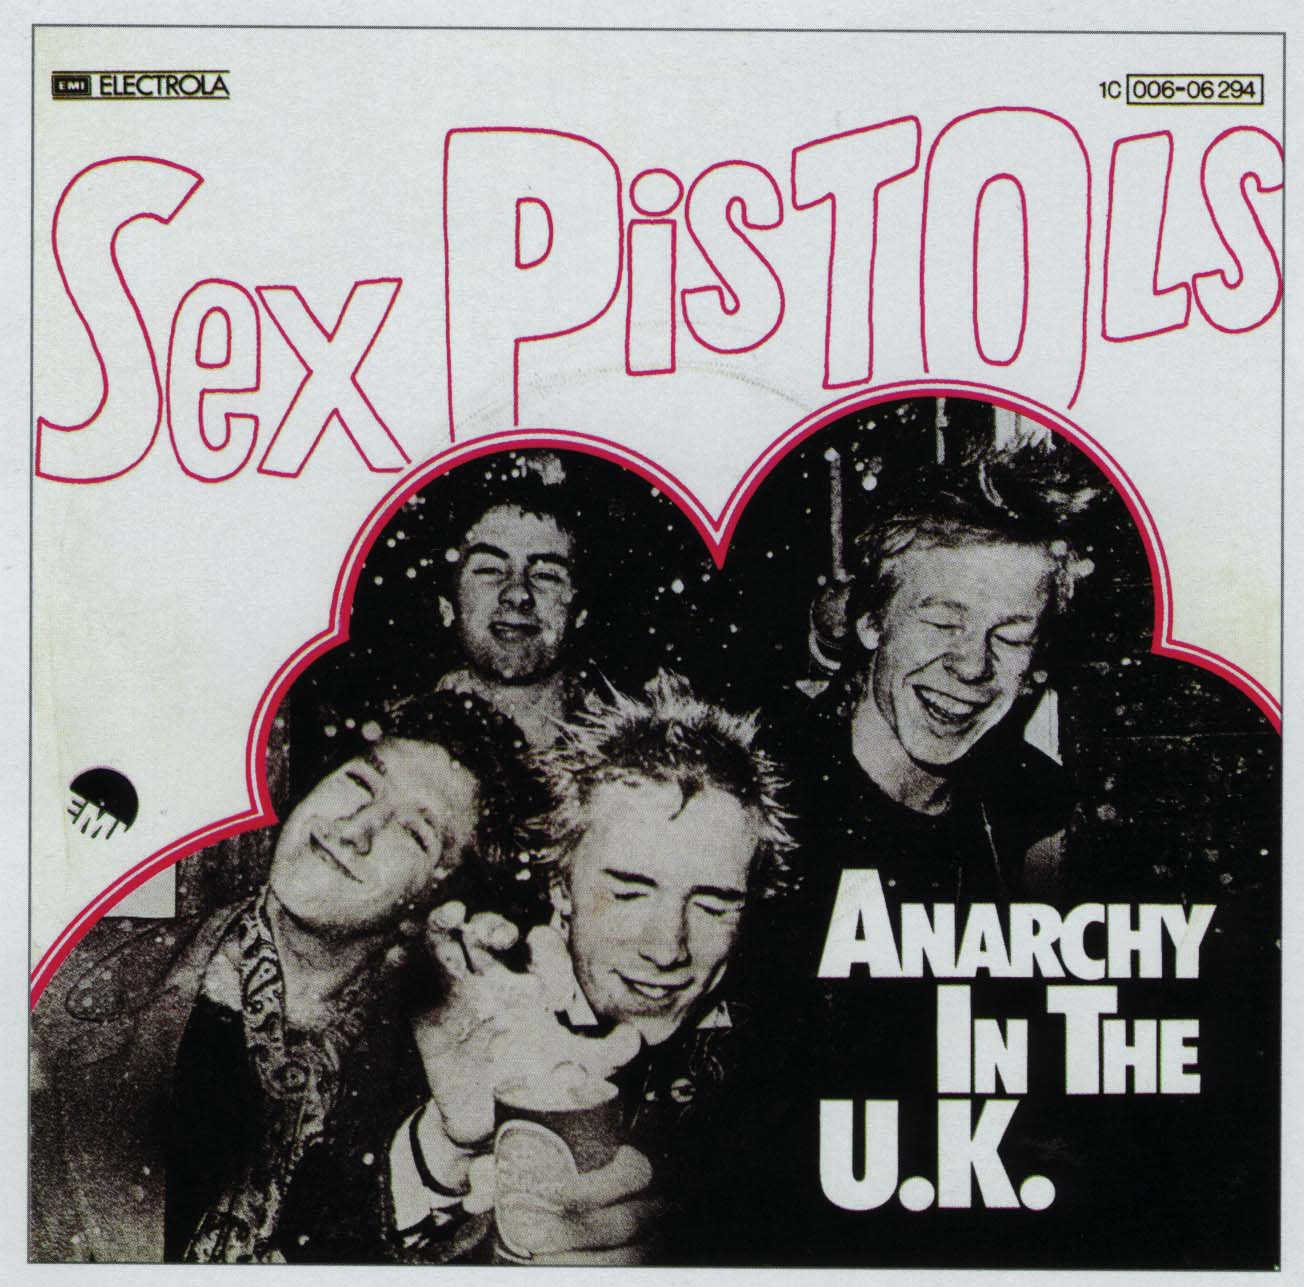 Anarchy in the UK - Germany 1976